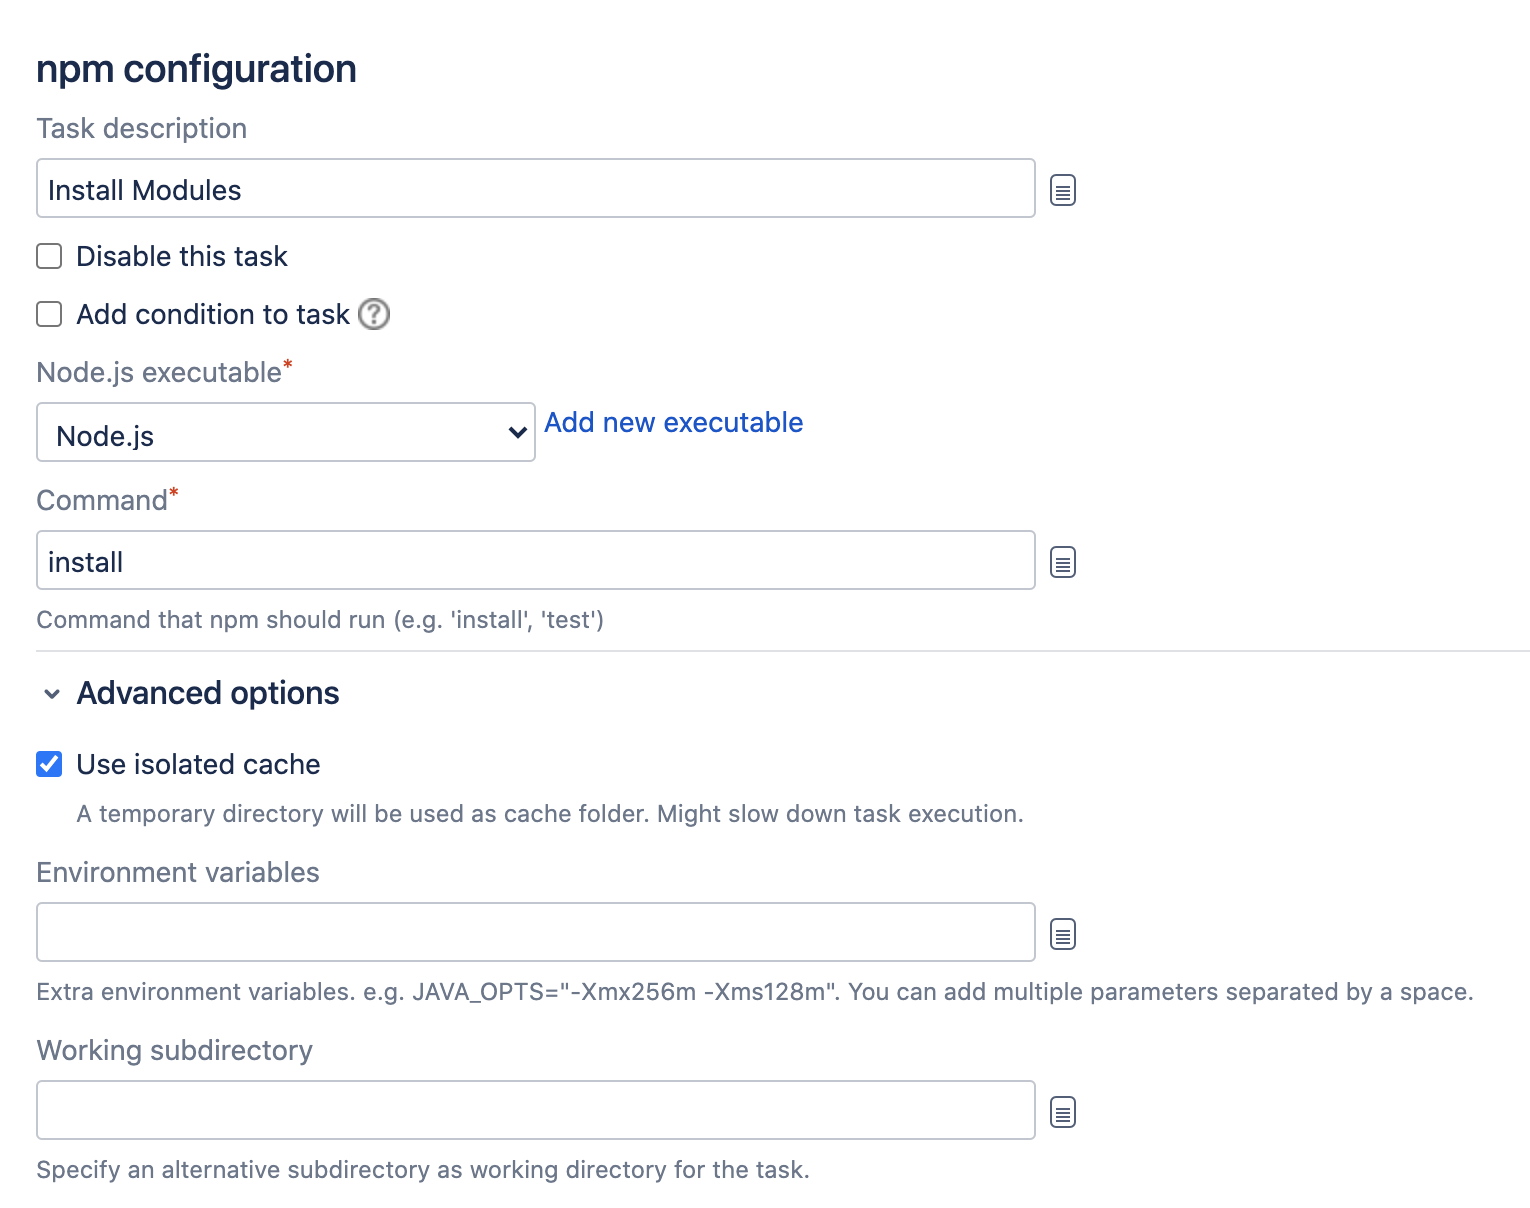 Npm task configuration screen in Bamboo